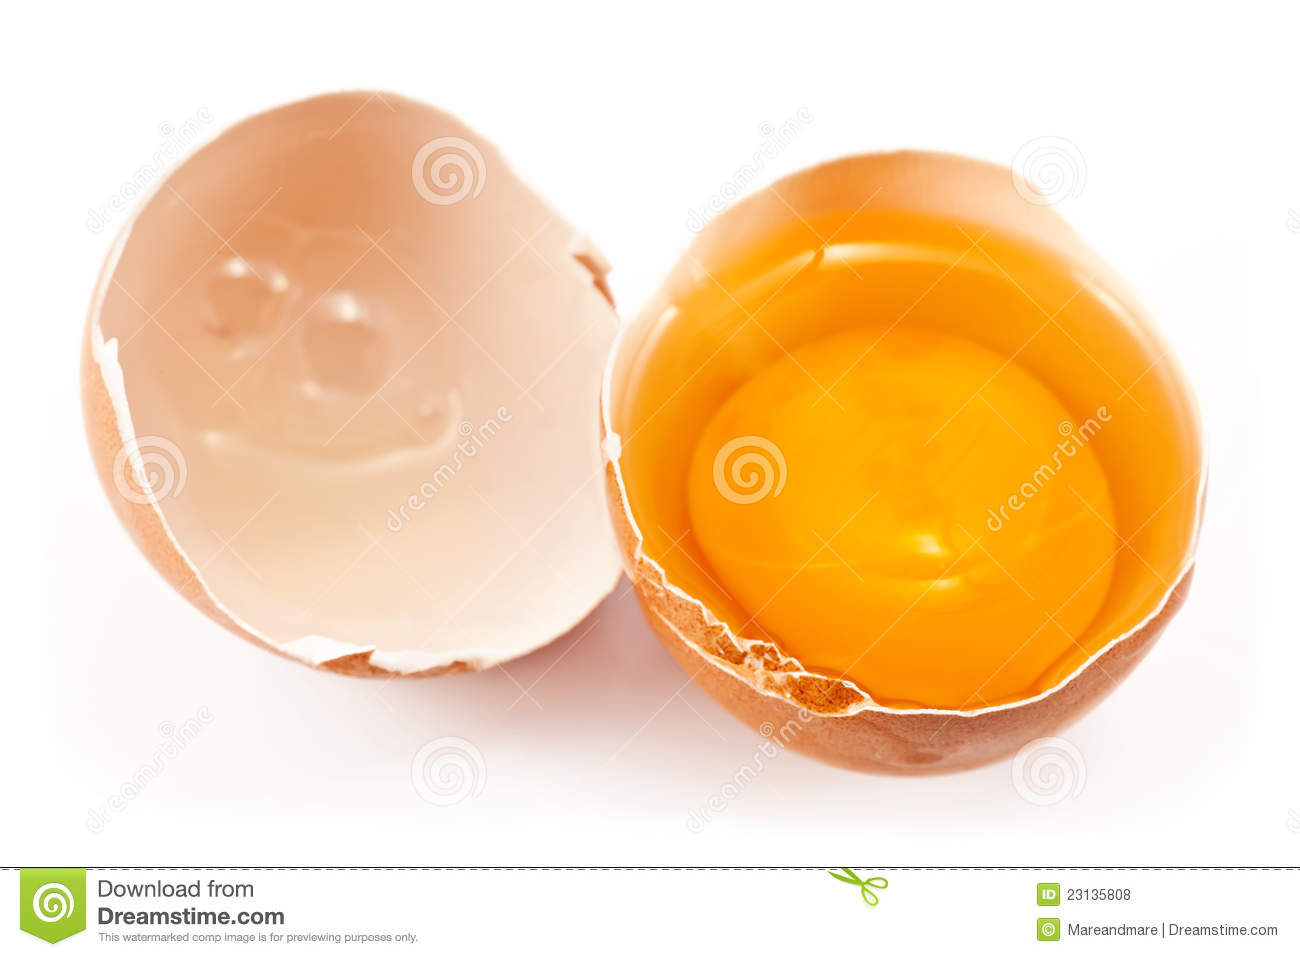 Chicken Egg Or The Quotes Quotesgram: Broken Egg Quotes. QuotesGram